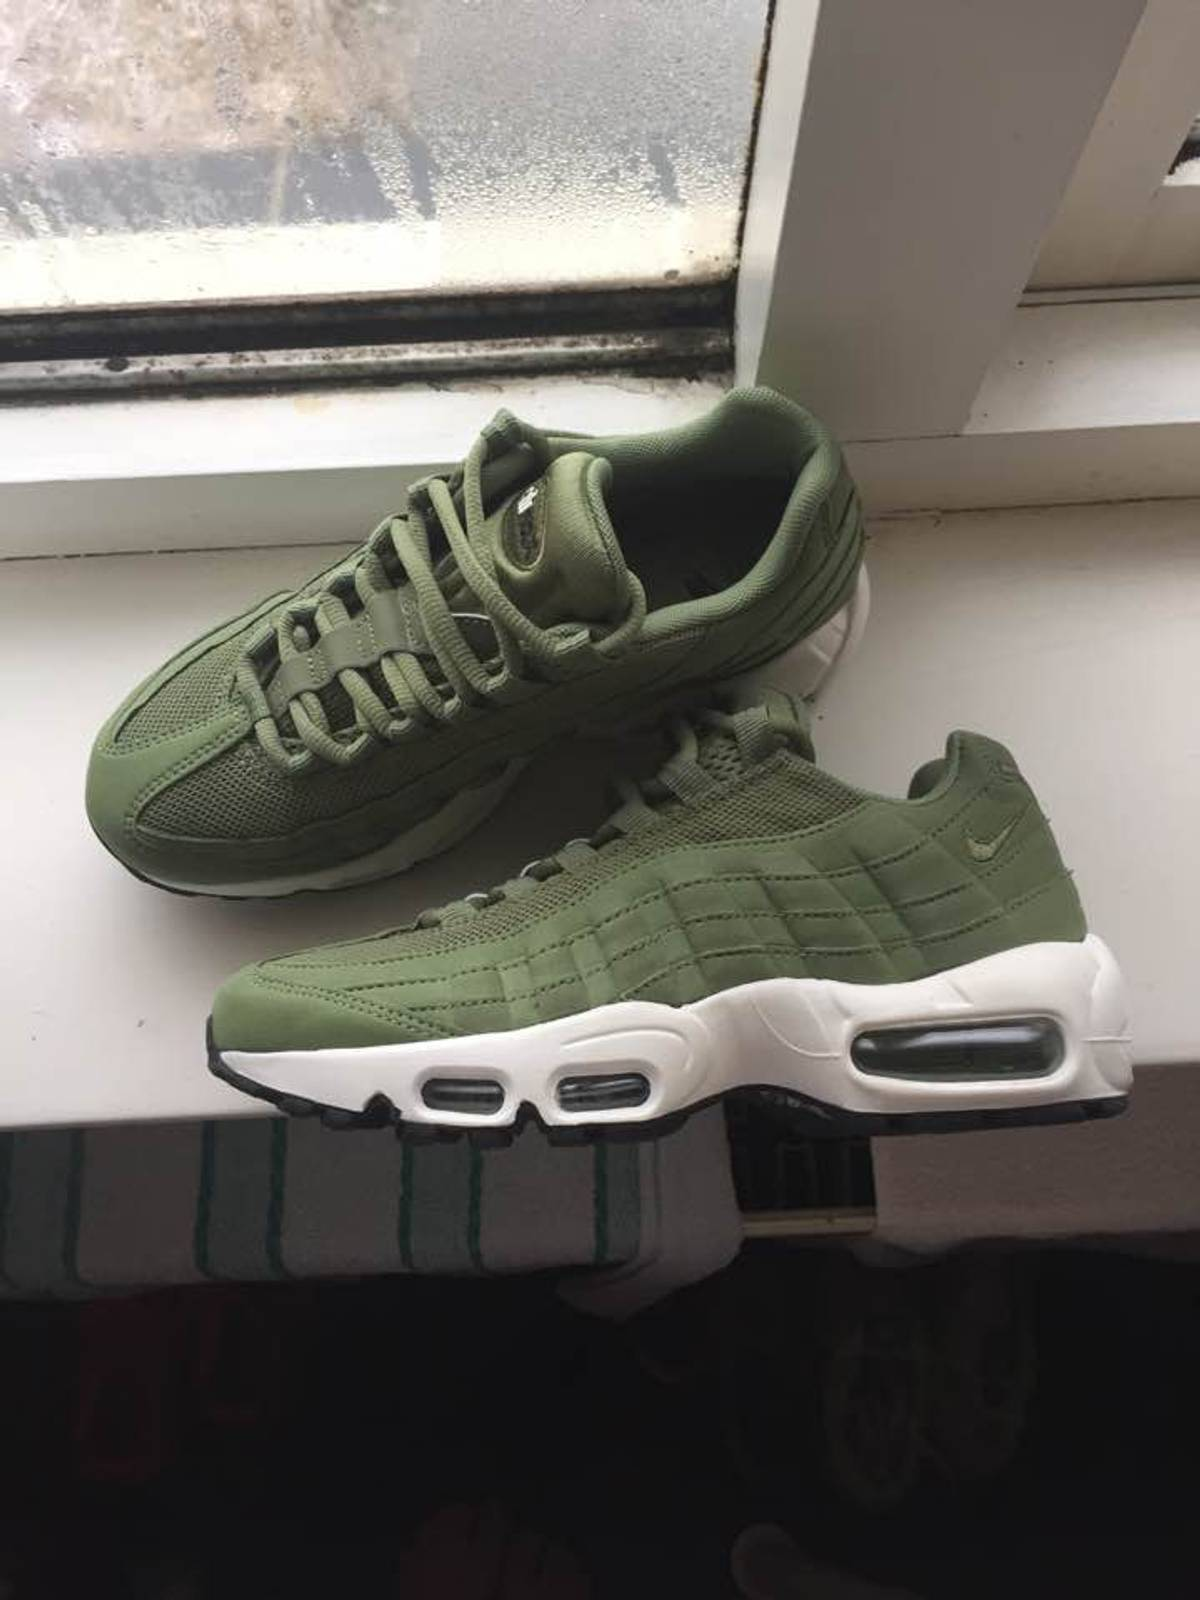 new arrival 77f94 fa996 ... promo code for nike air max 95 mens black grey nike air max 95 palm  green